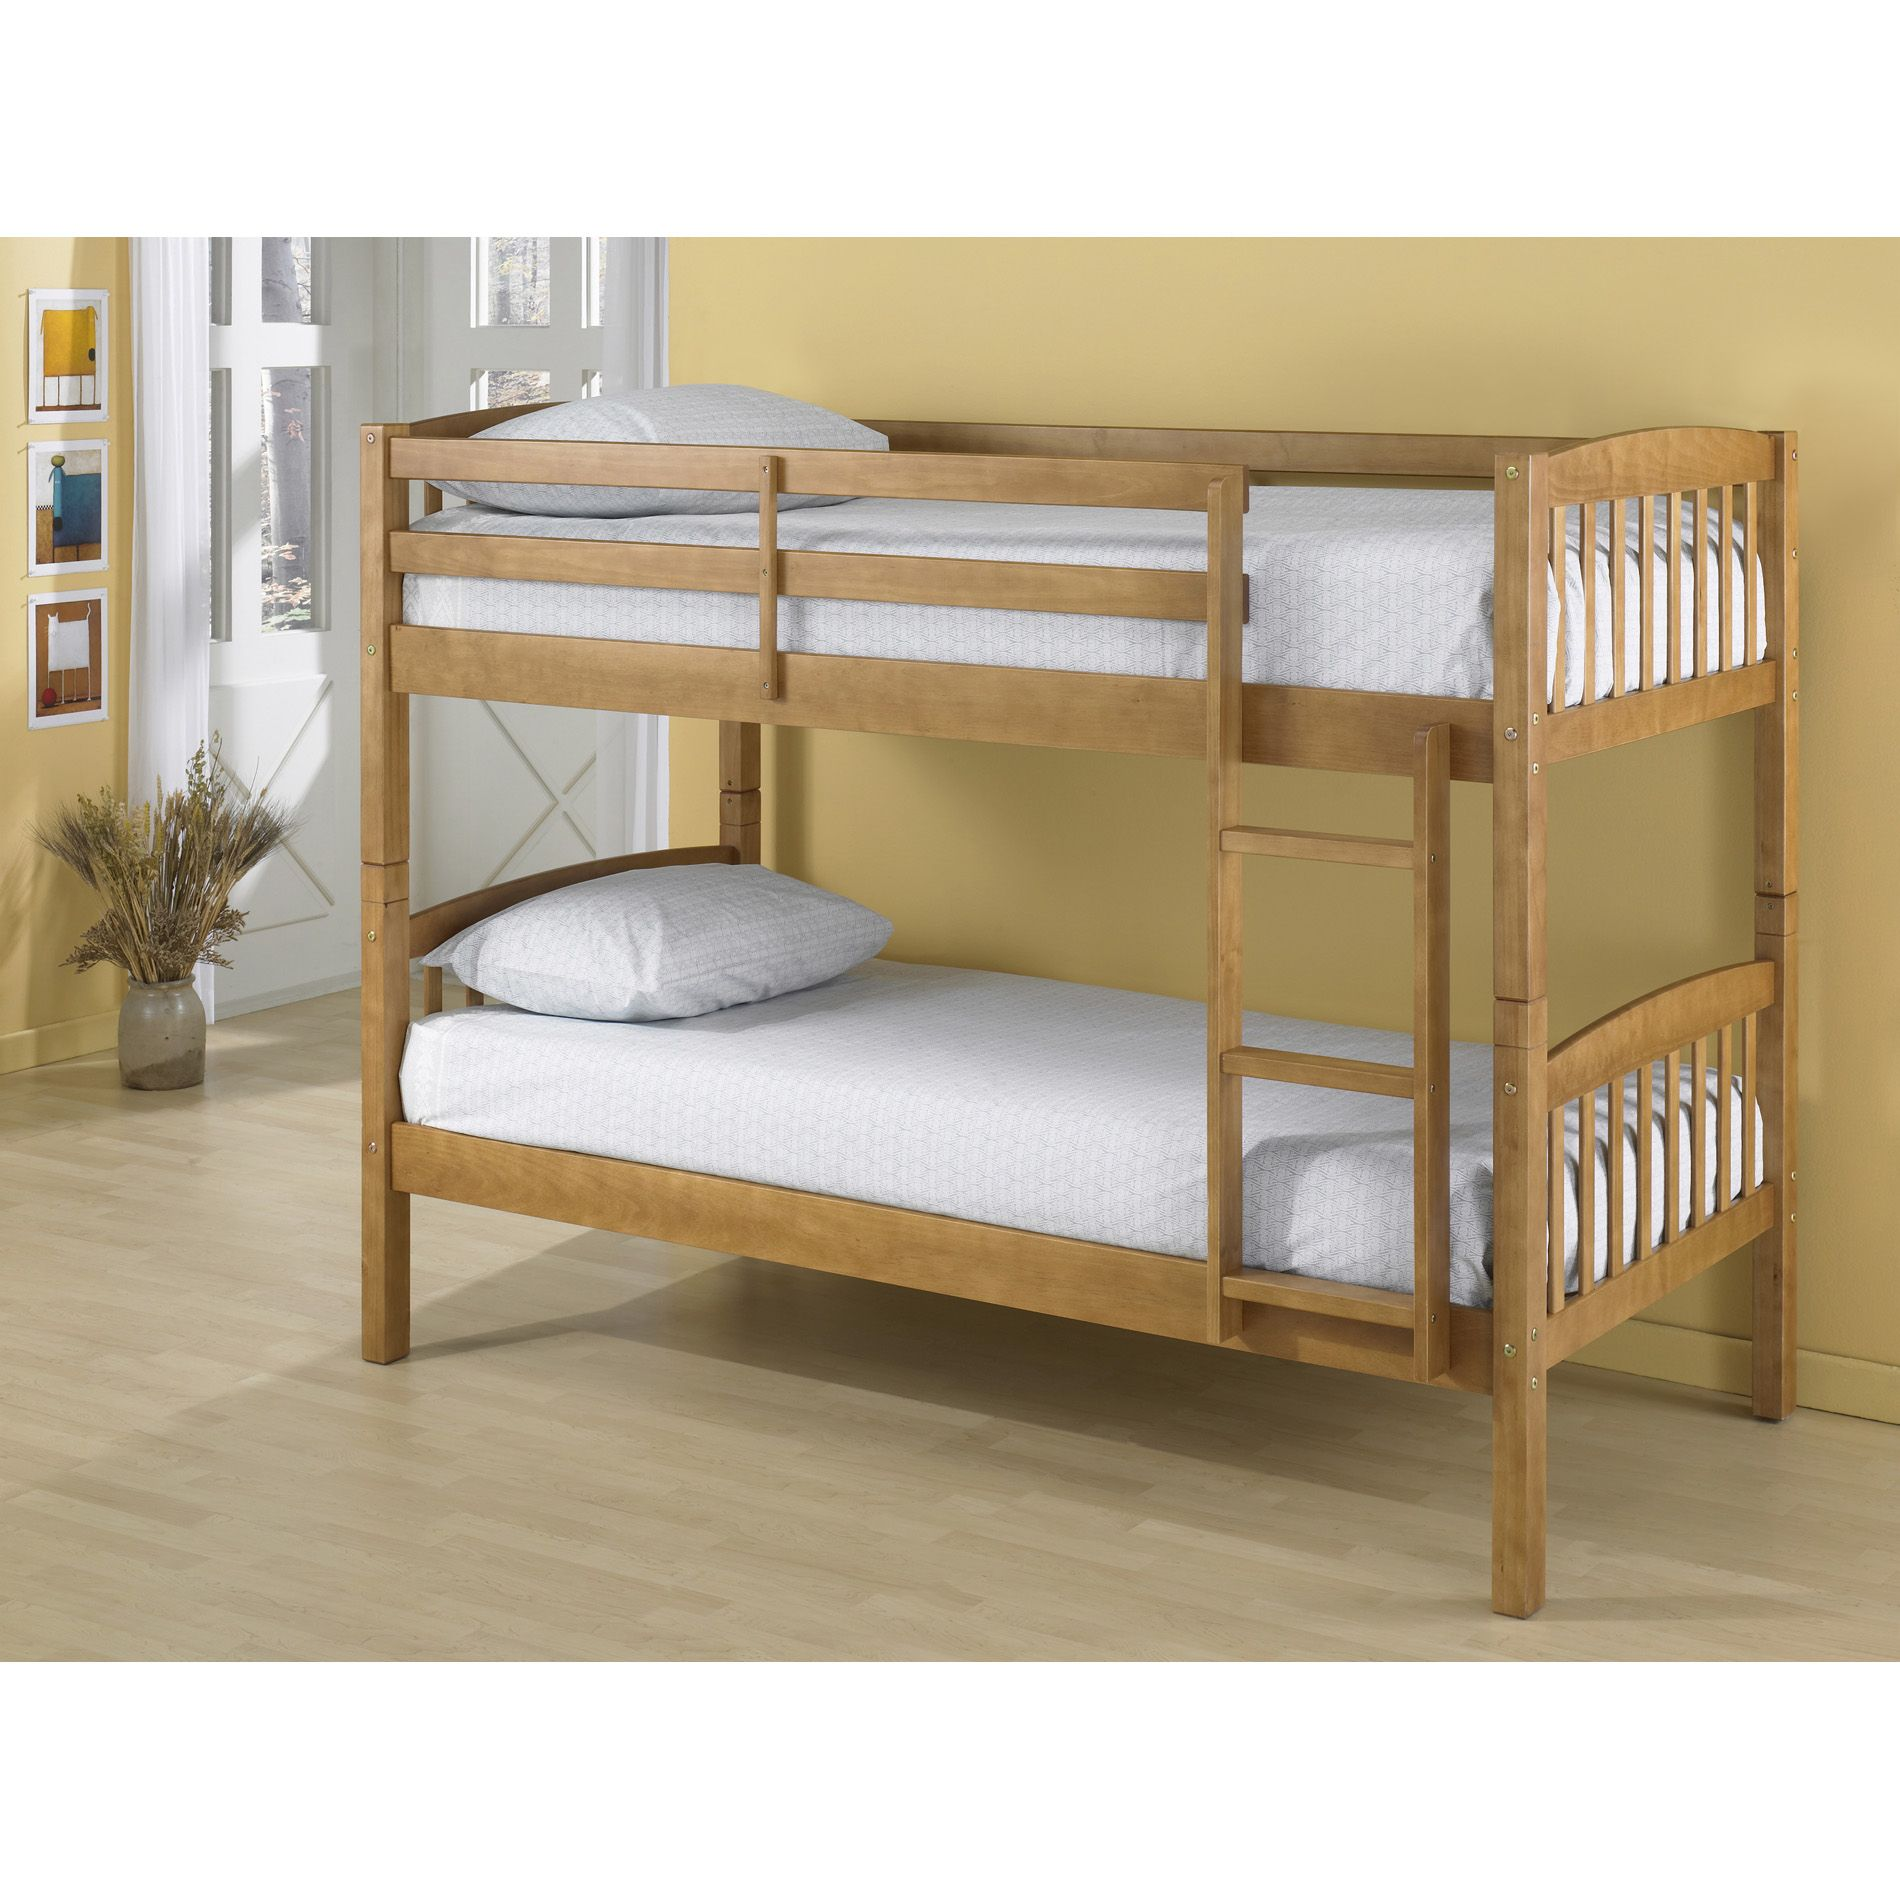 official photos 25d2a d42b5 Essential Home Belmont Bunk Bed with Pine Finish - $129.46 ...